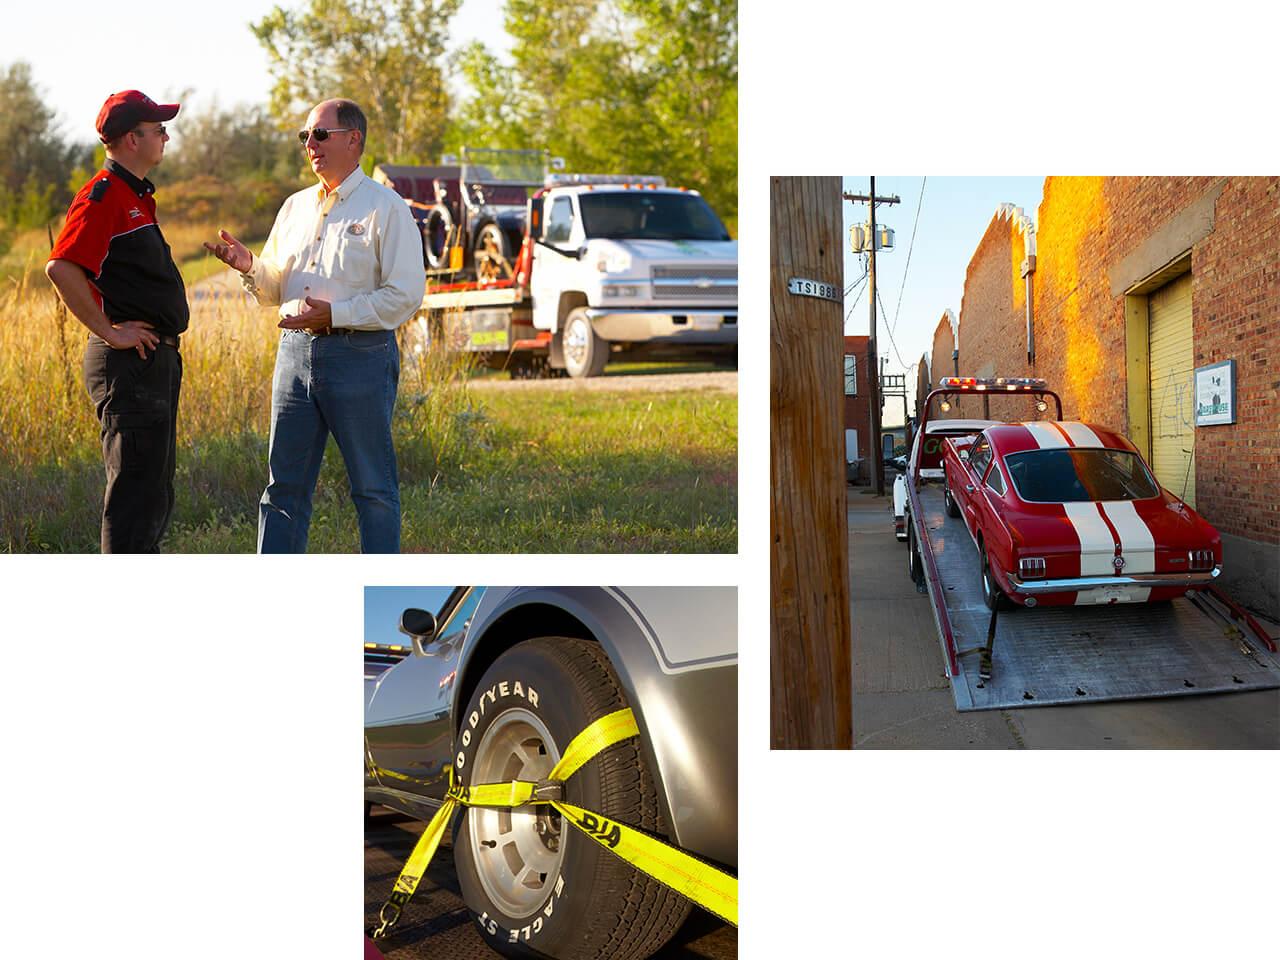 Two men talking next to a white tow truck with a red collector vehicle strapped to it.